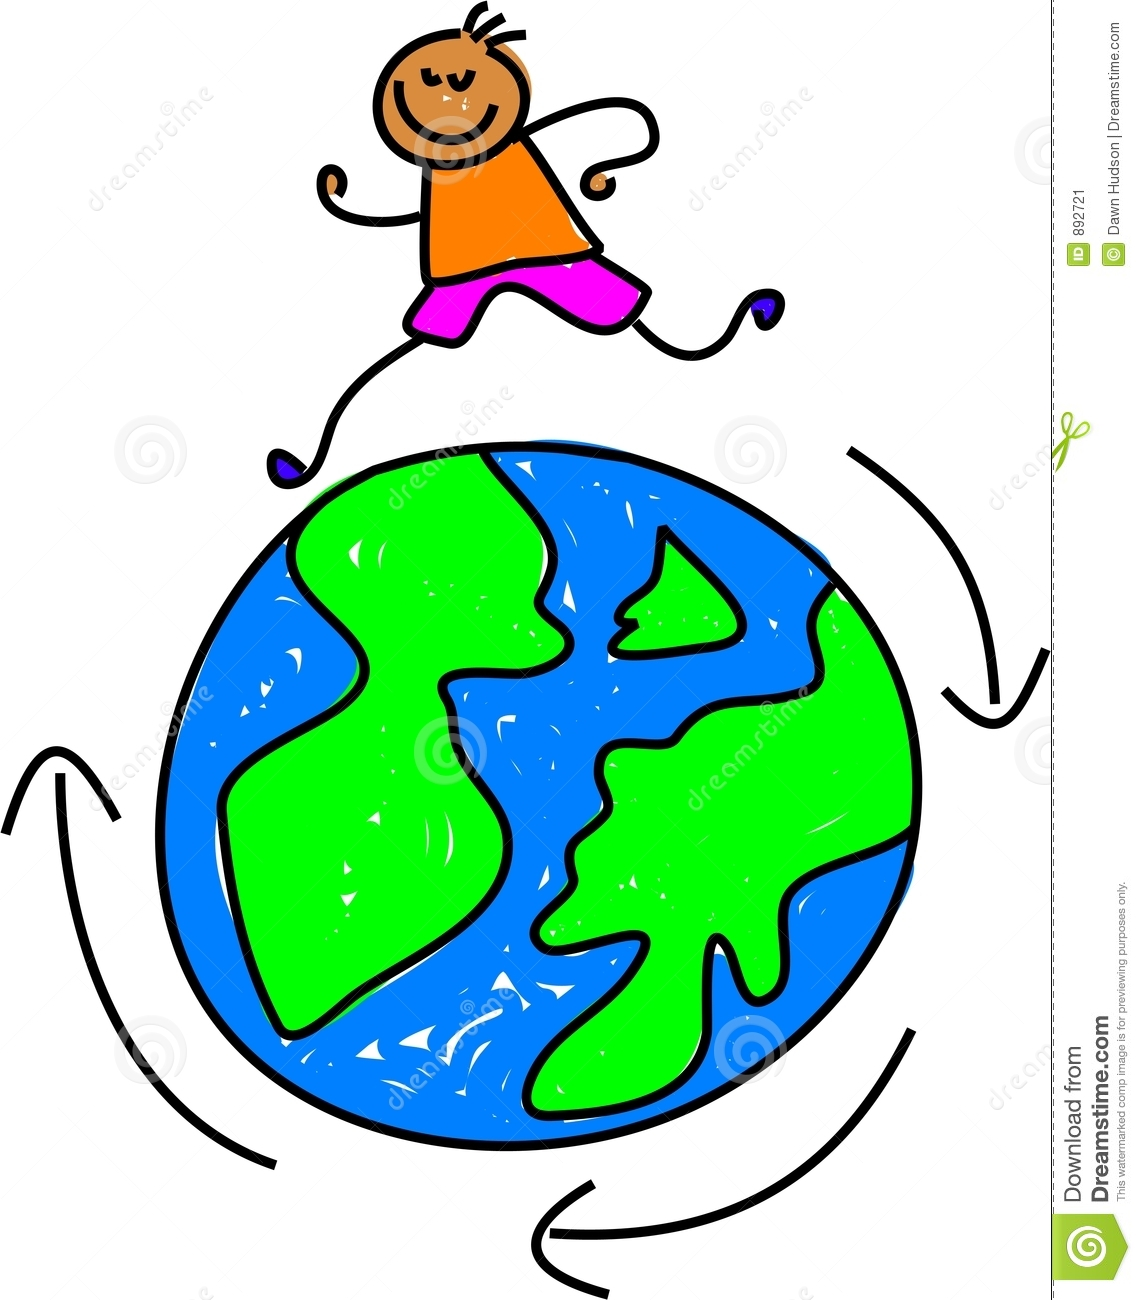 hight resolution of travel clipart